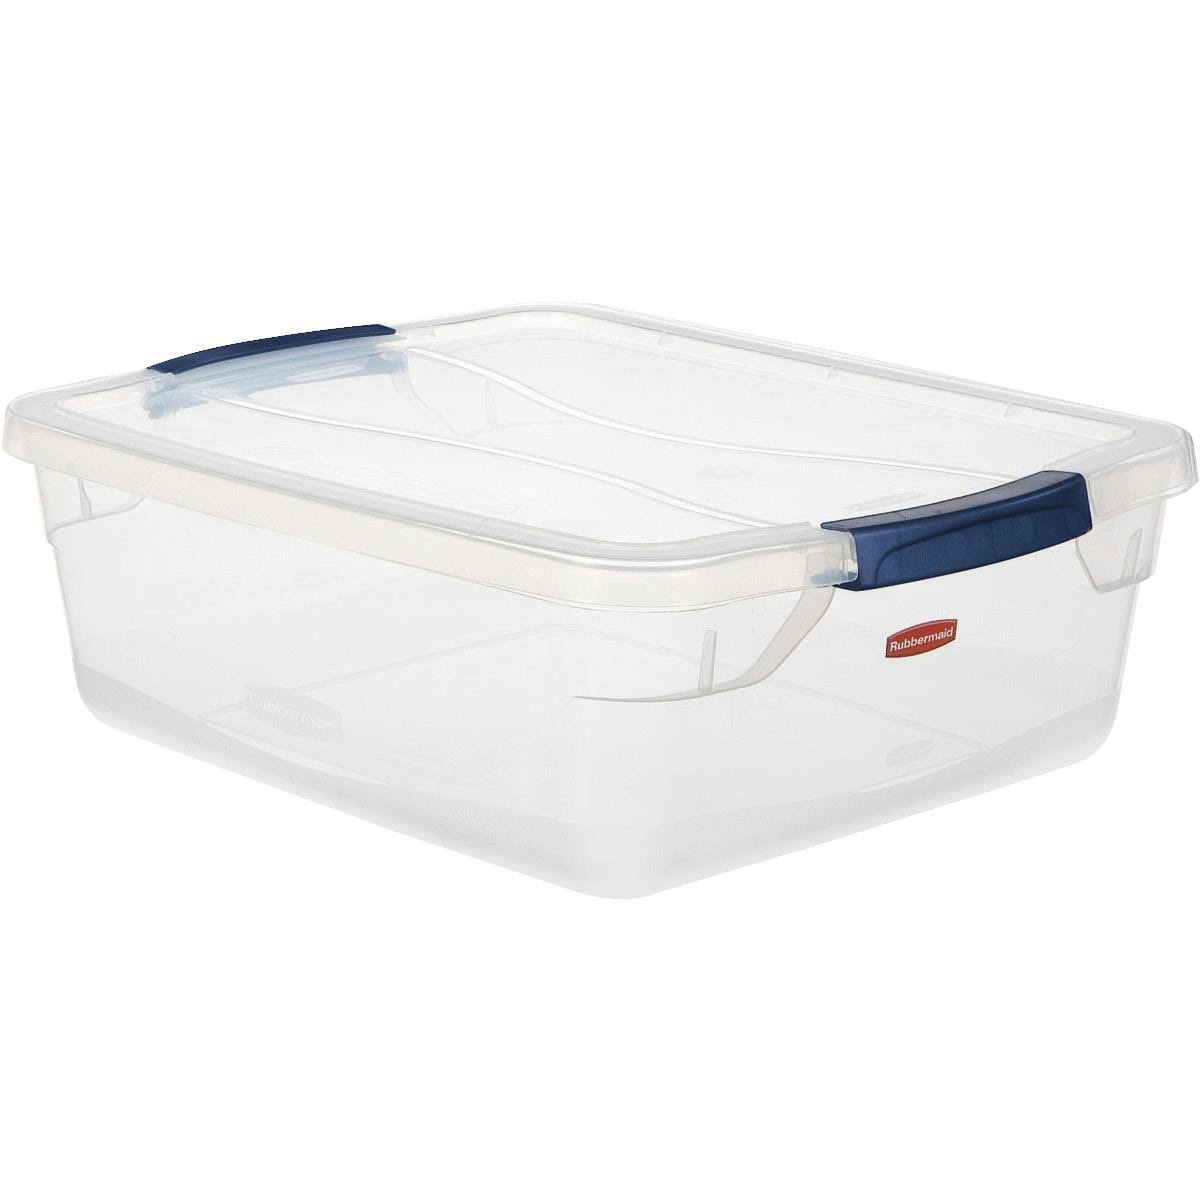 Rubbermaid RMCC150001 Latching Storage Container - 15qt